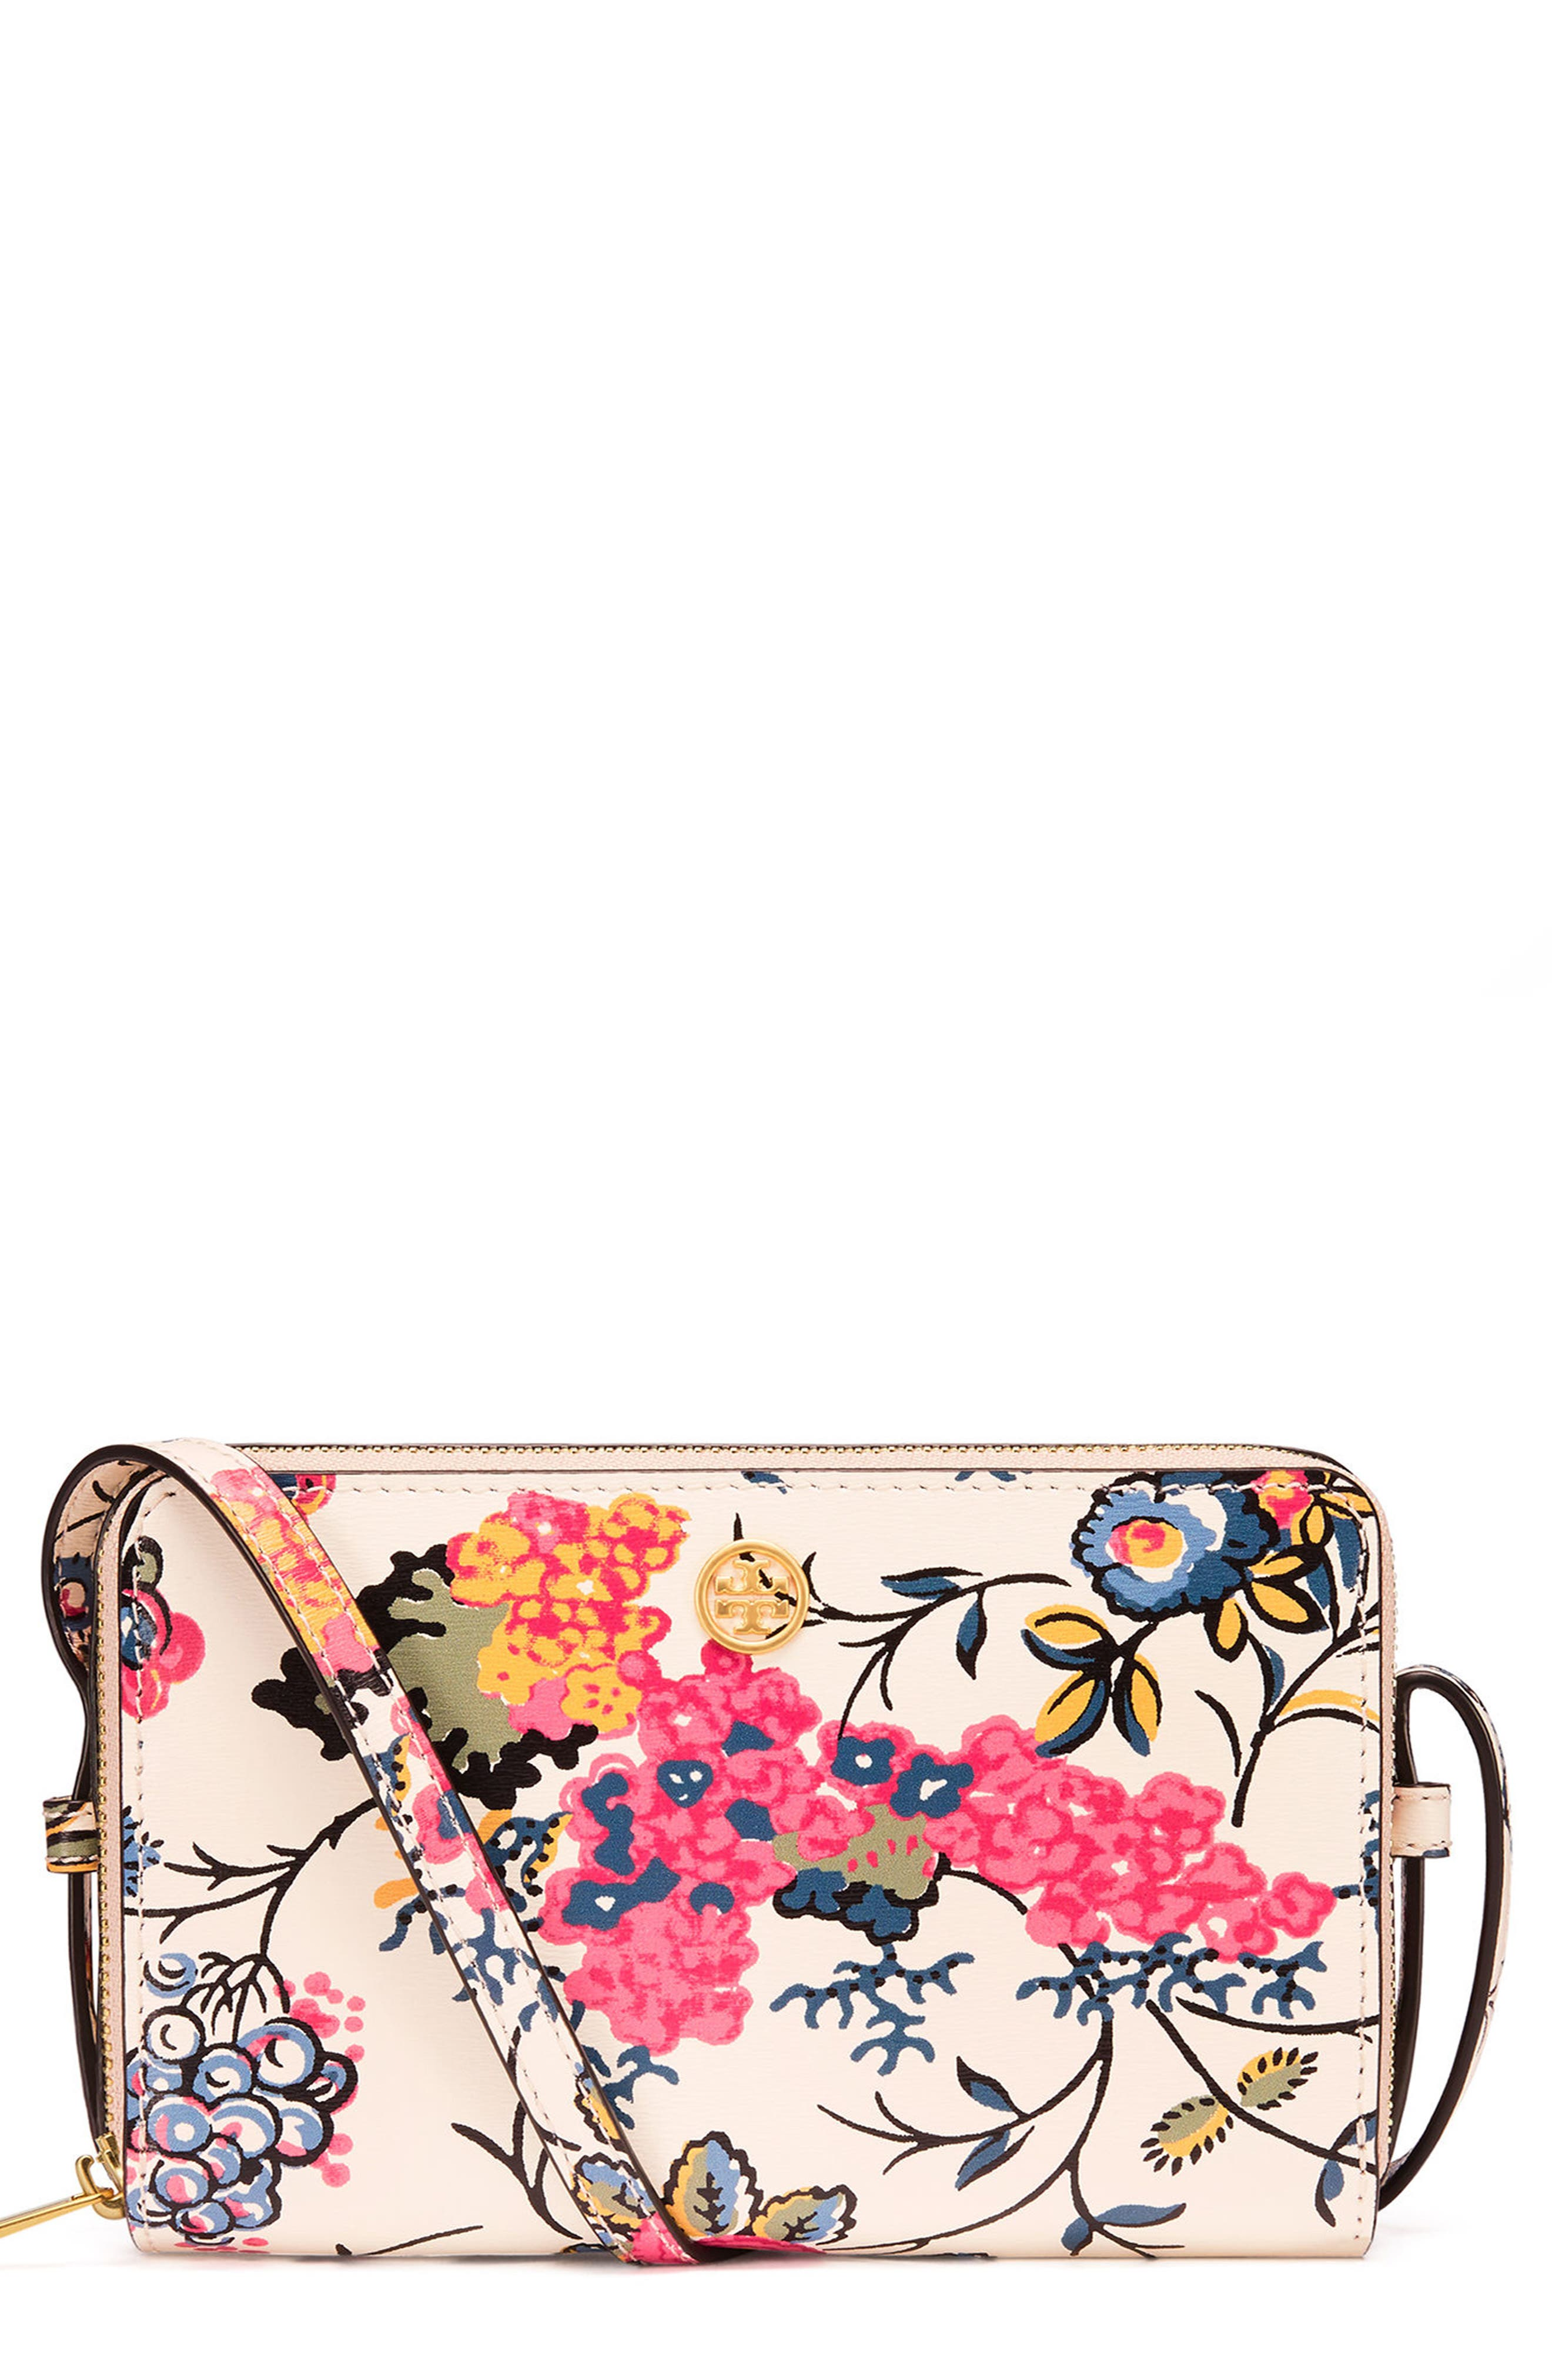 Tory Burch Mini Parker Floral Crossbody Bag